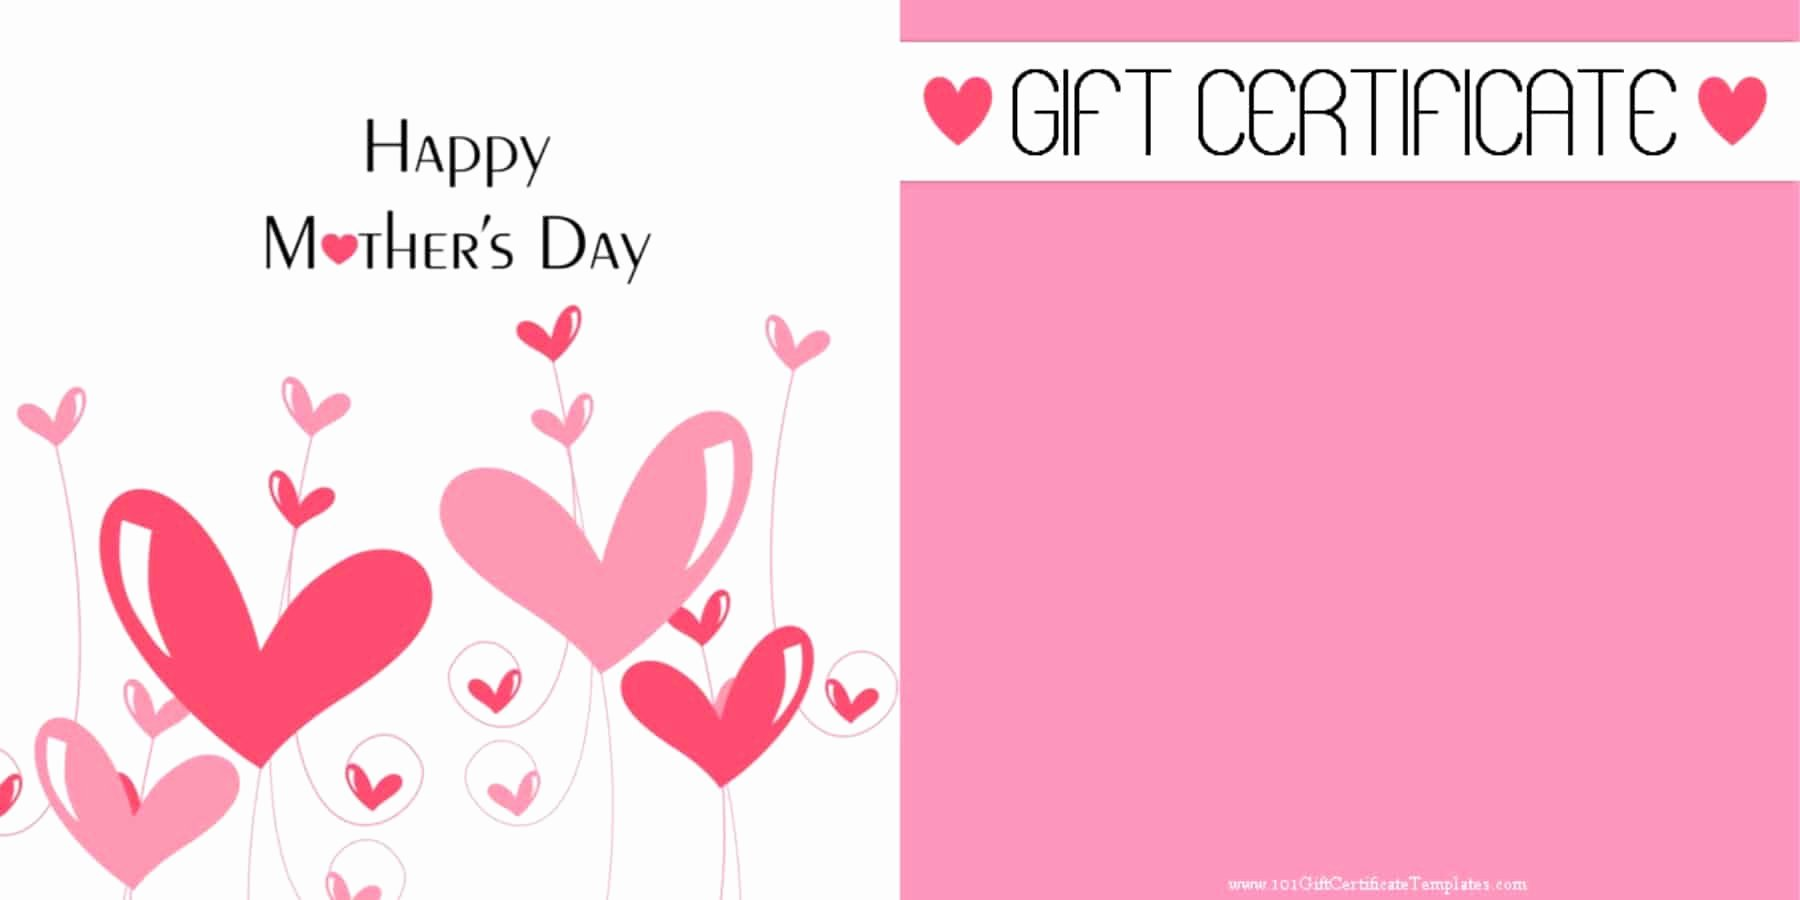 Father's Day Gift Certificate Template Fresh Mother S Day Gift Certificate Templates